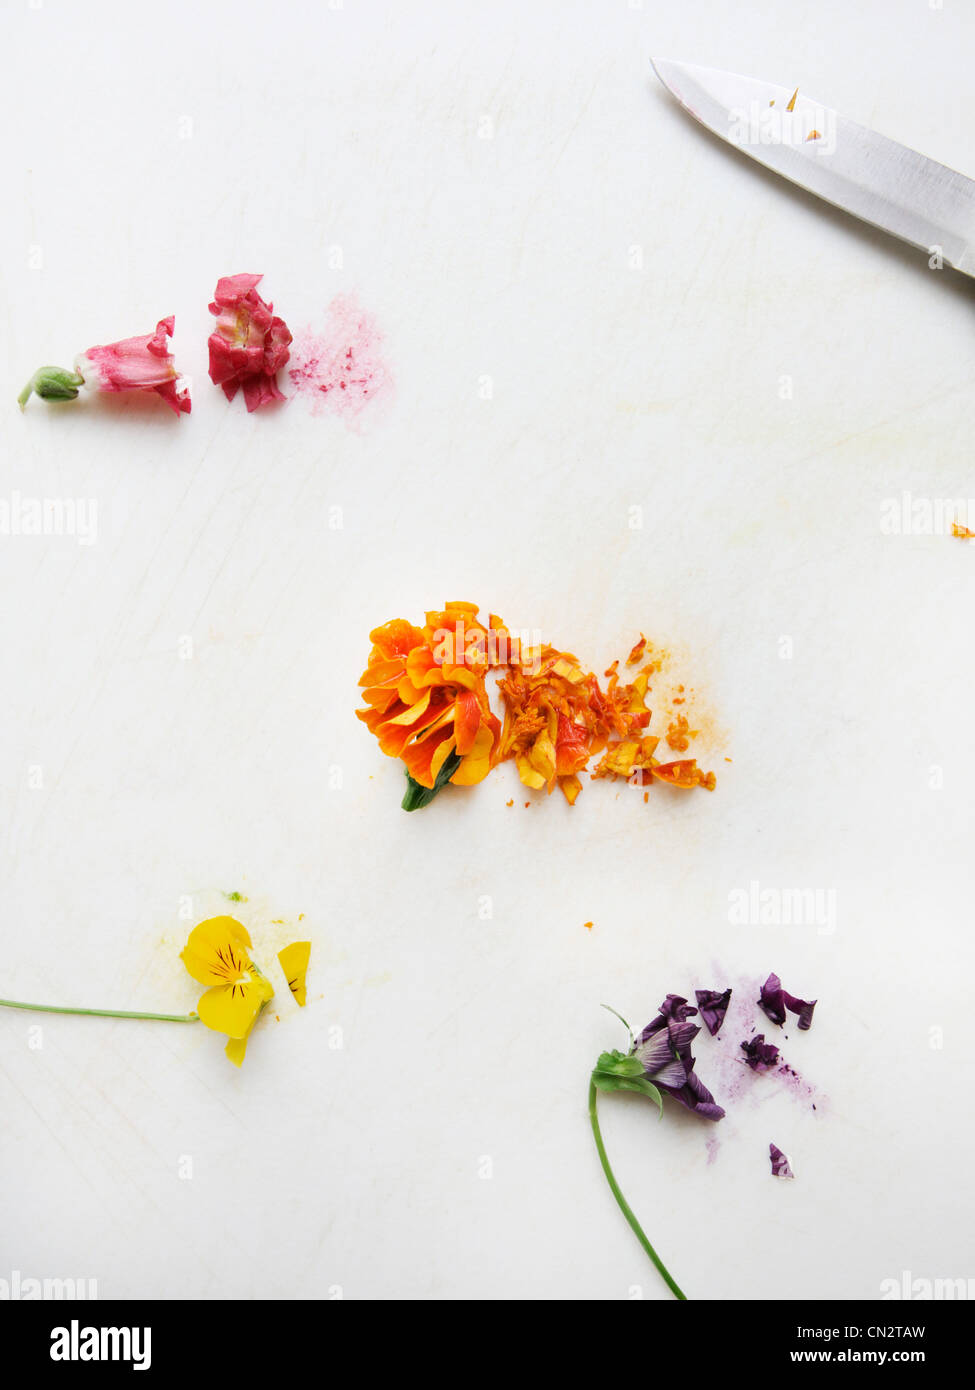 Chopped edible flowers - Stock Image